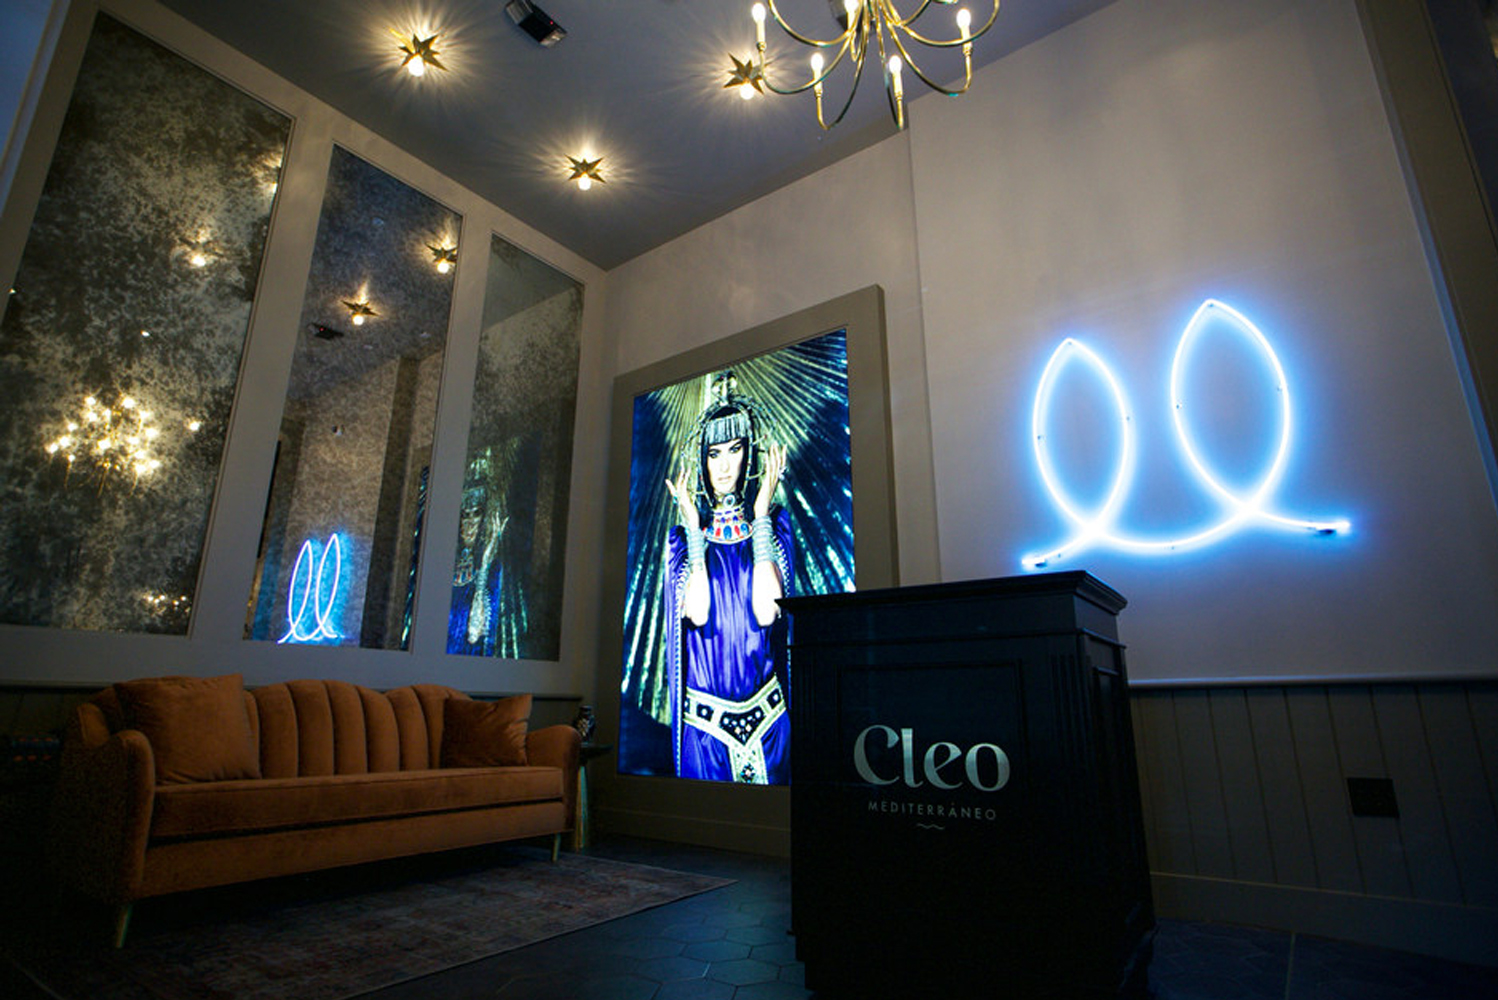 SBE reopened Cleo Mediterráneo Hollywood, the second location in Los Angeles of the culinary concept from SBE's Disruptive Group division.